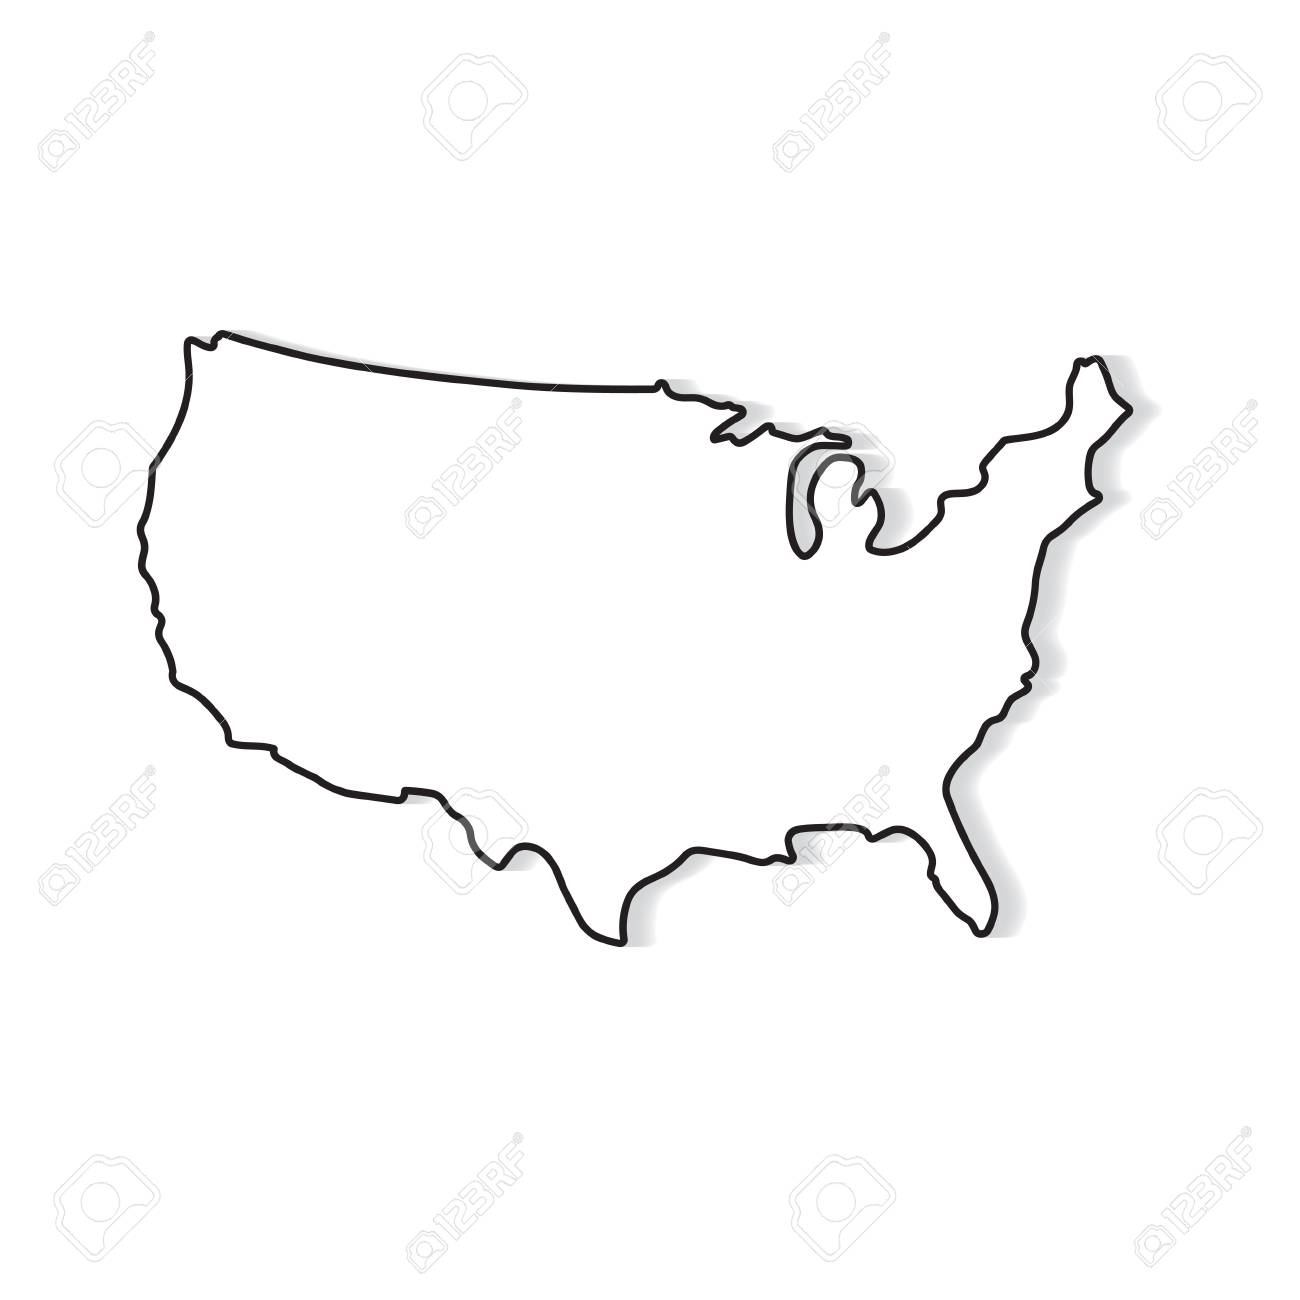 black and white map of United States- vector illustration